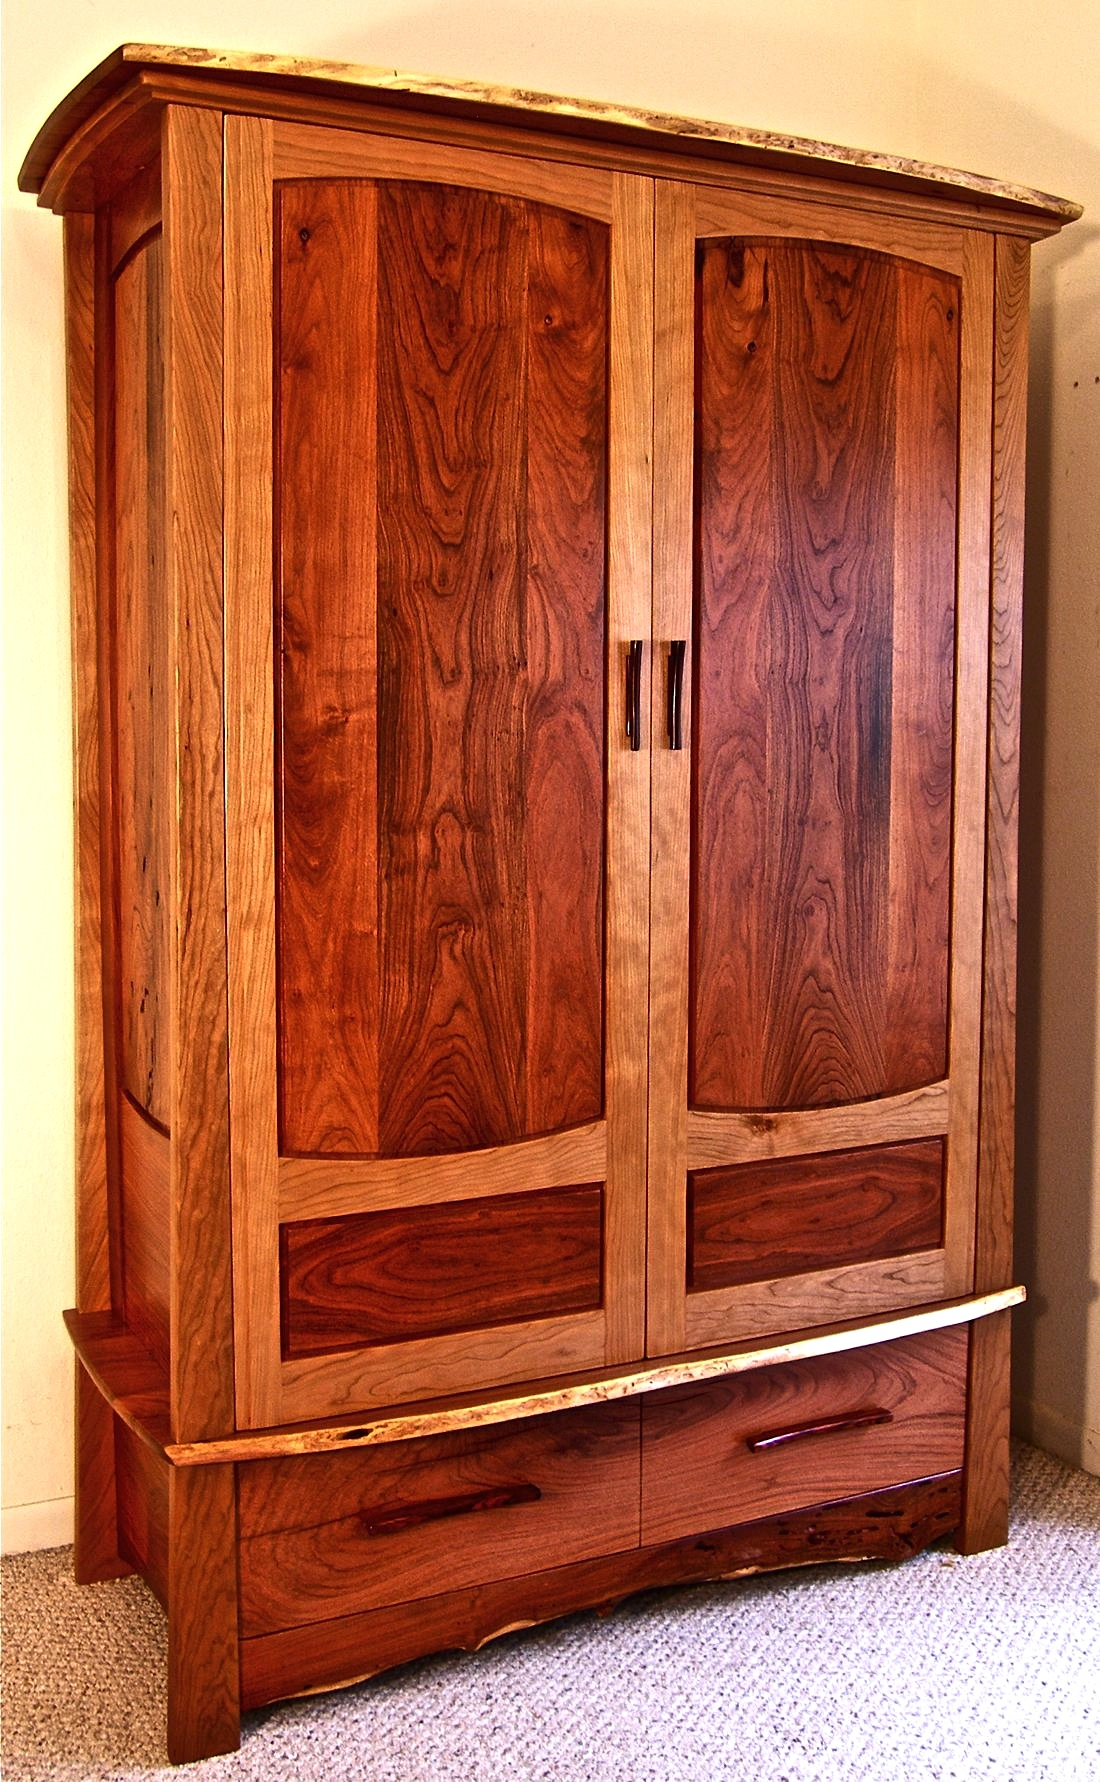 diy shaker armoire plans wooden pdf wood clamping systems. Black Bedroom Furniture Sets. Home Design Ideas